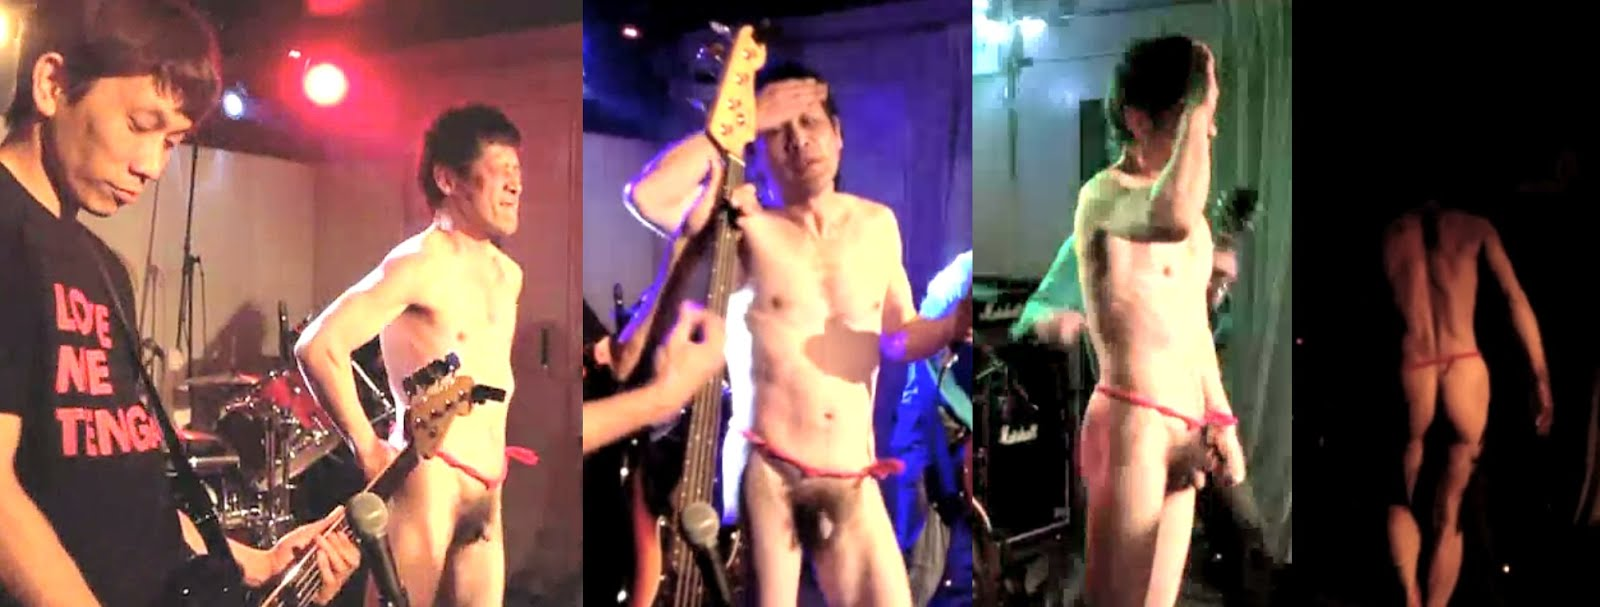 Performance male naked nude